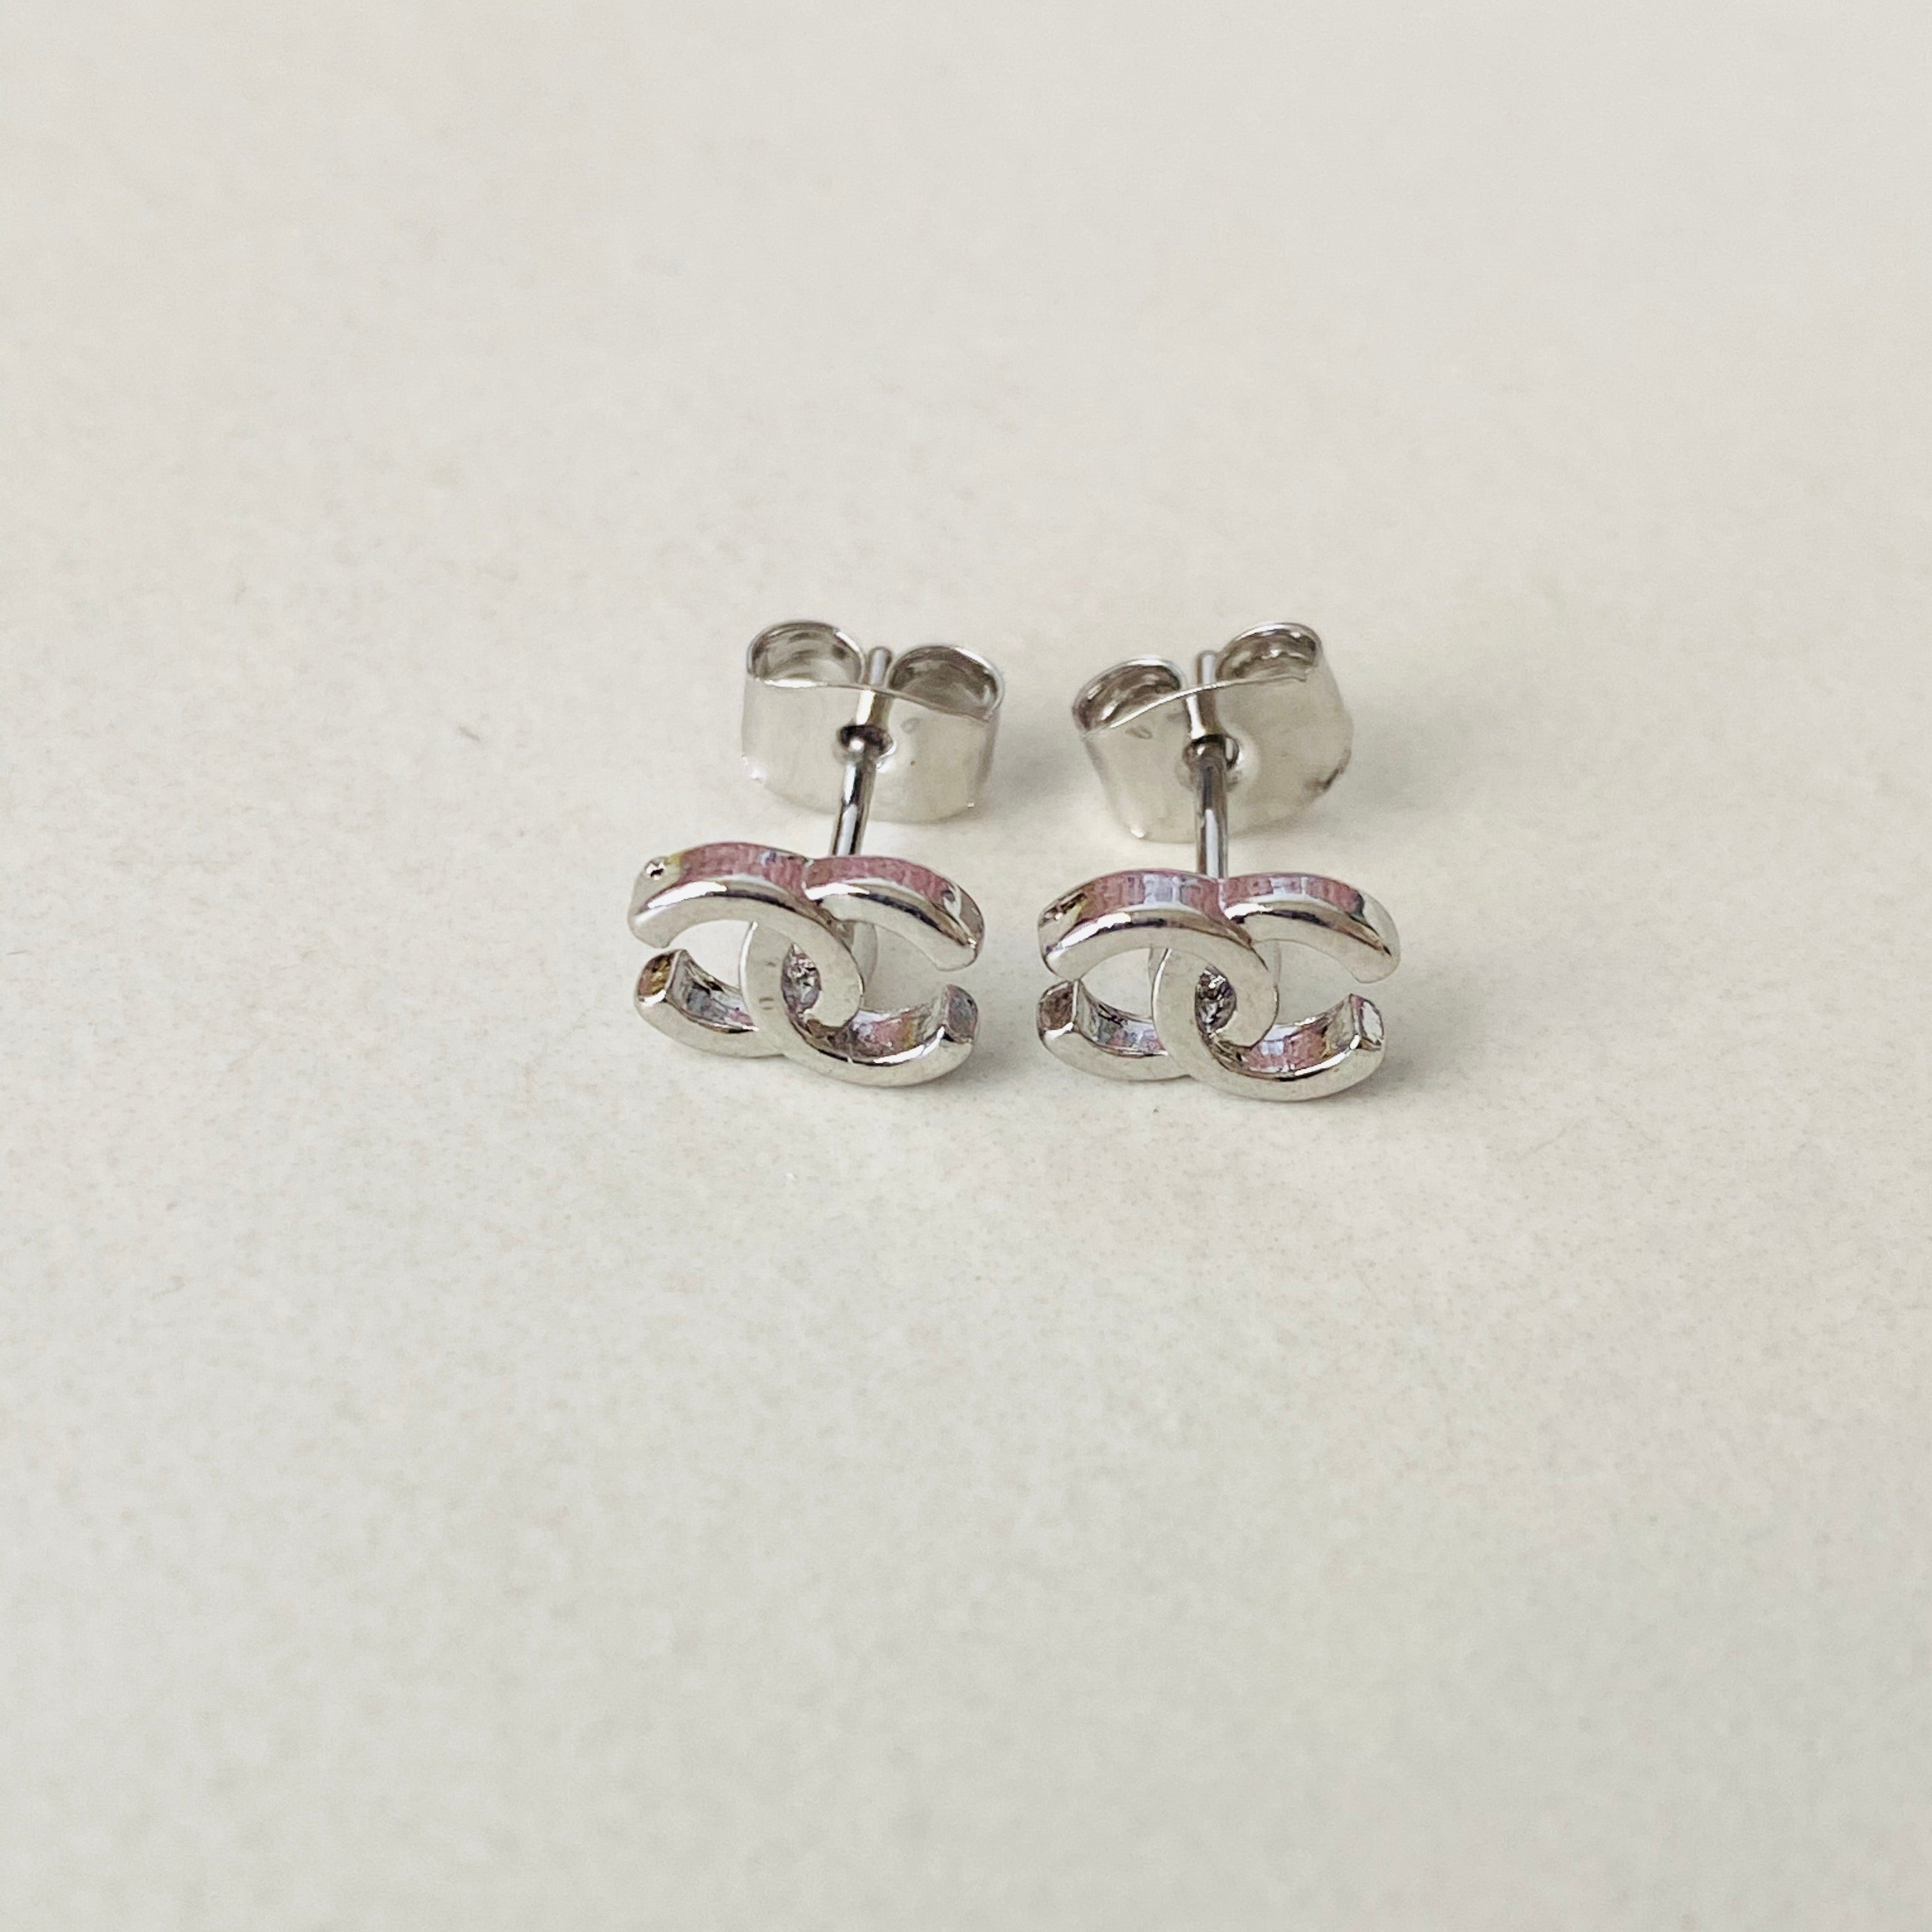 CC Small White Stud Earrings